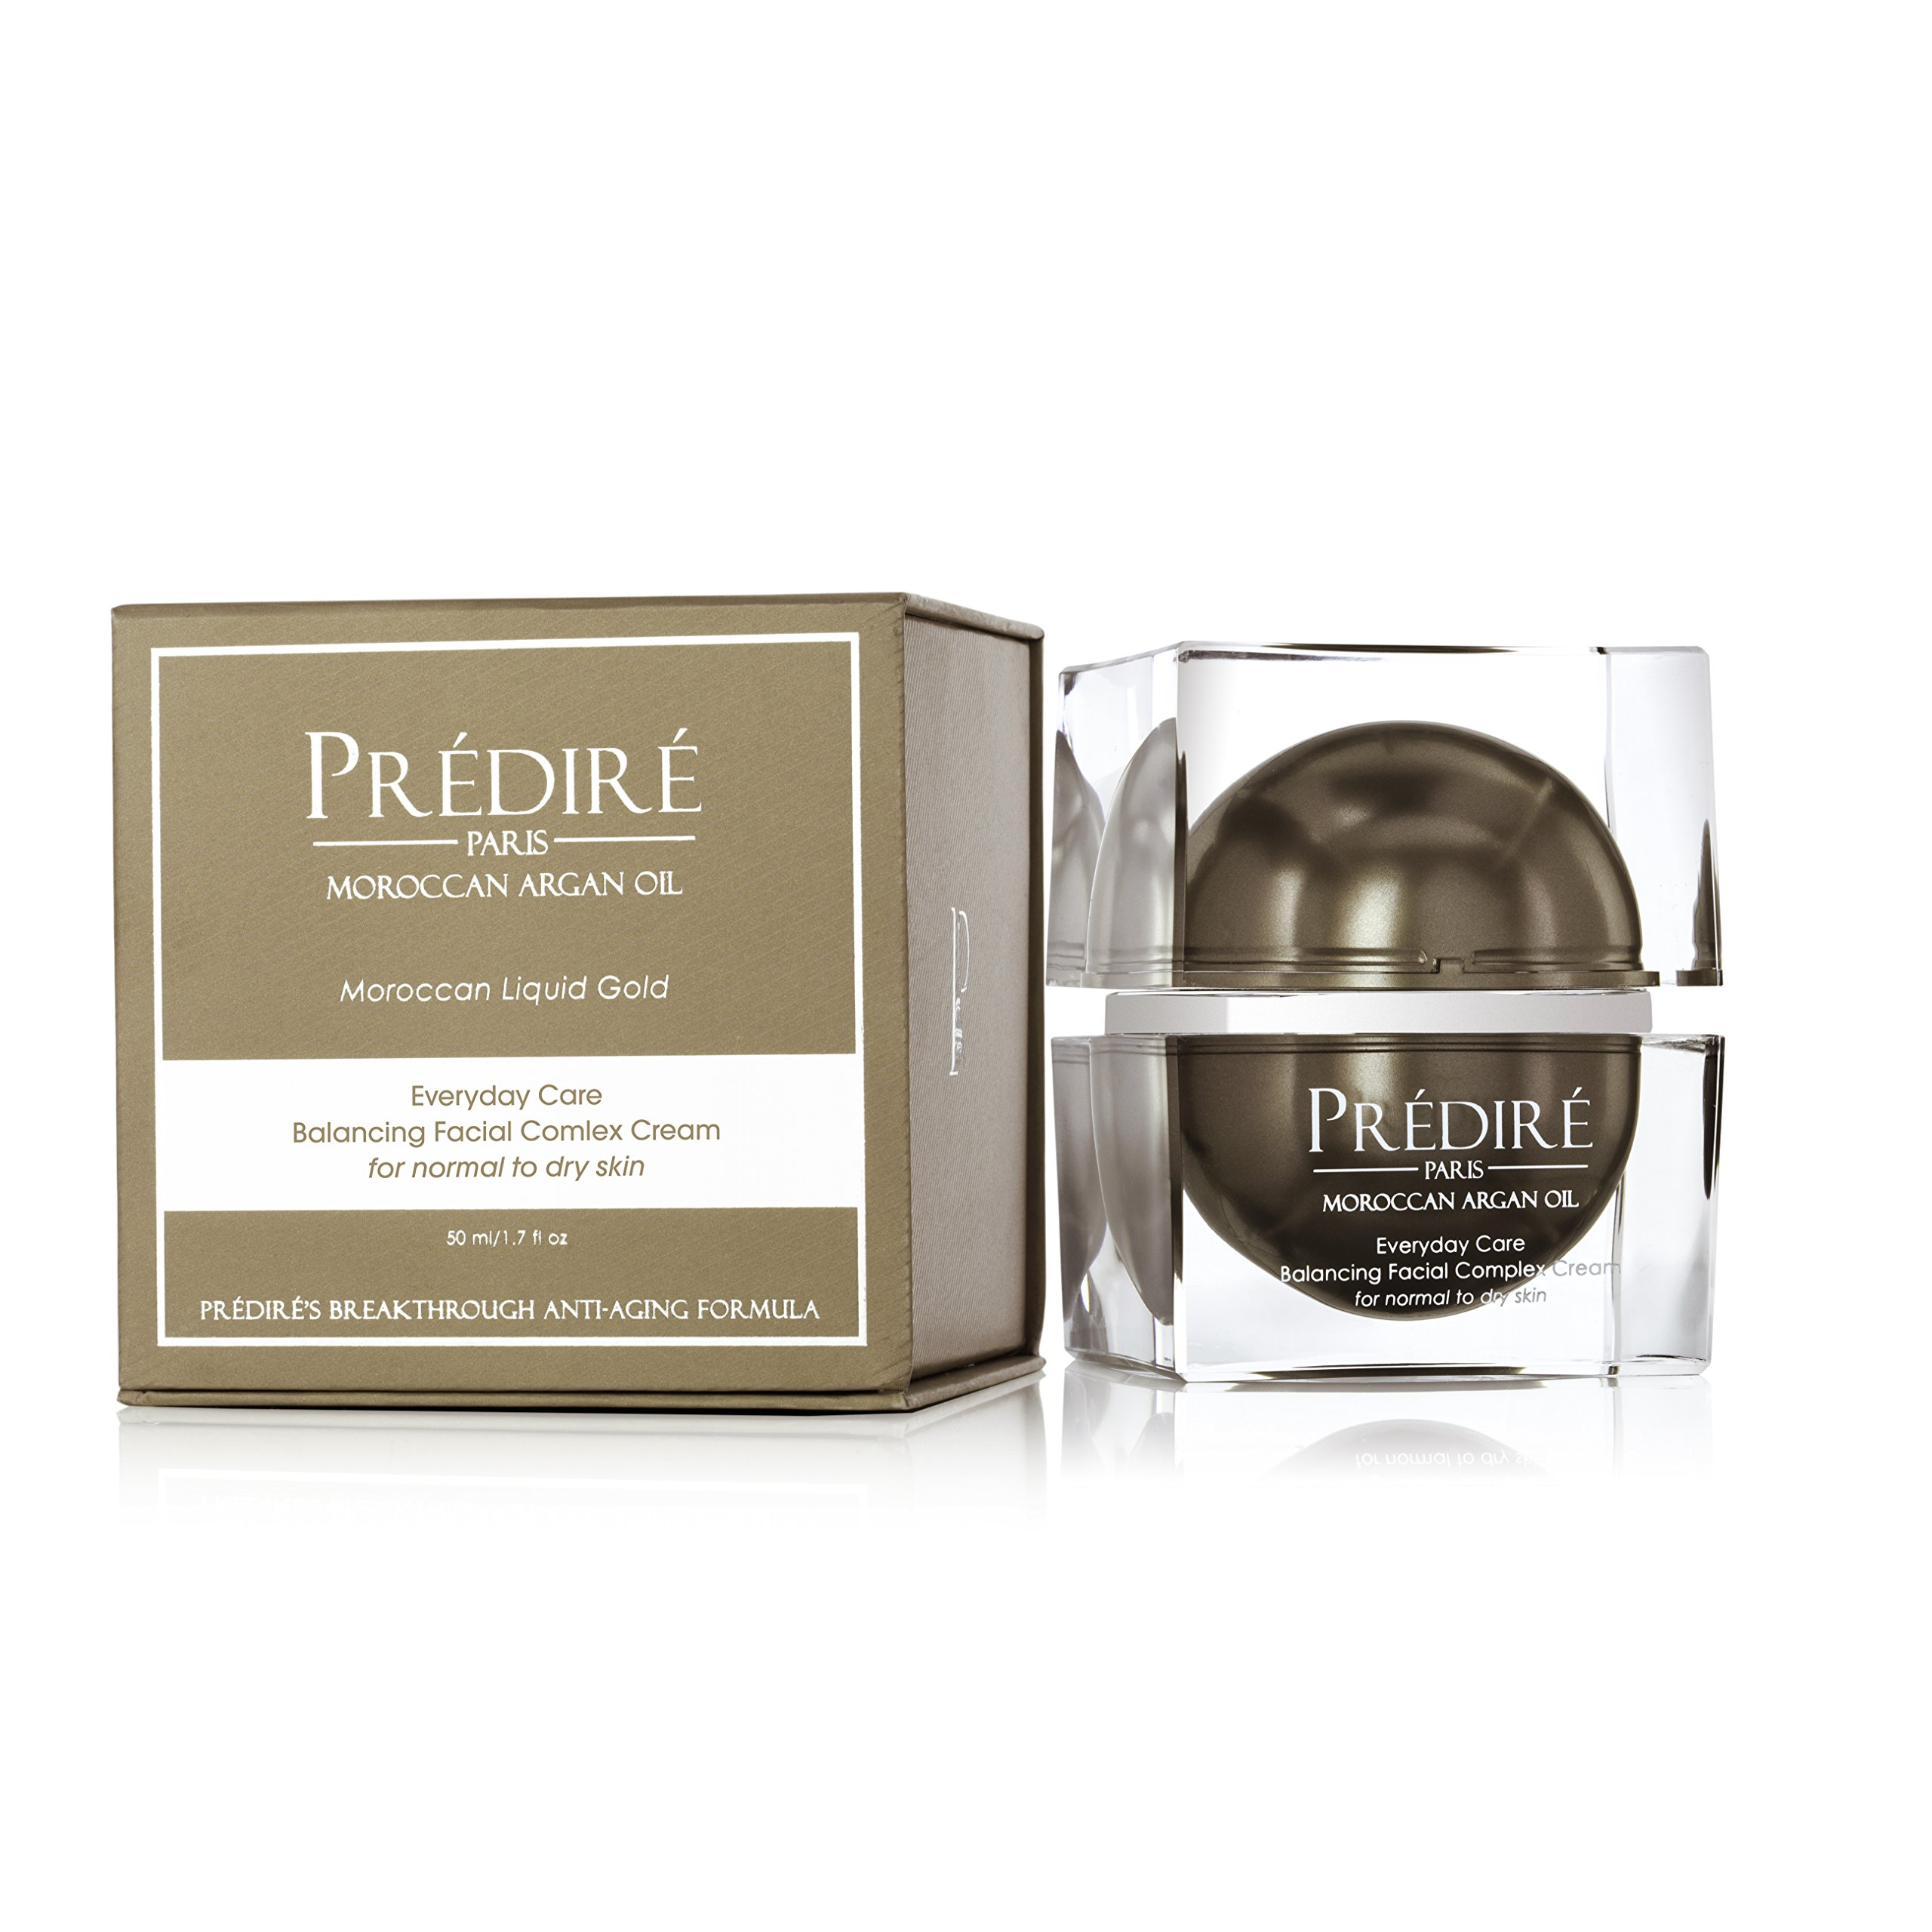 Predire Everyday Care Balancing facial Complex Cream (for normal to dry skin) 50ML